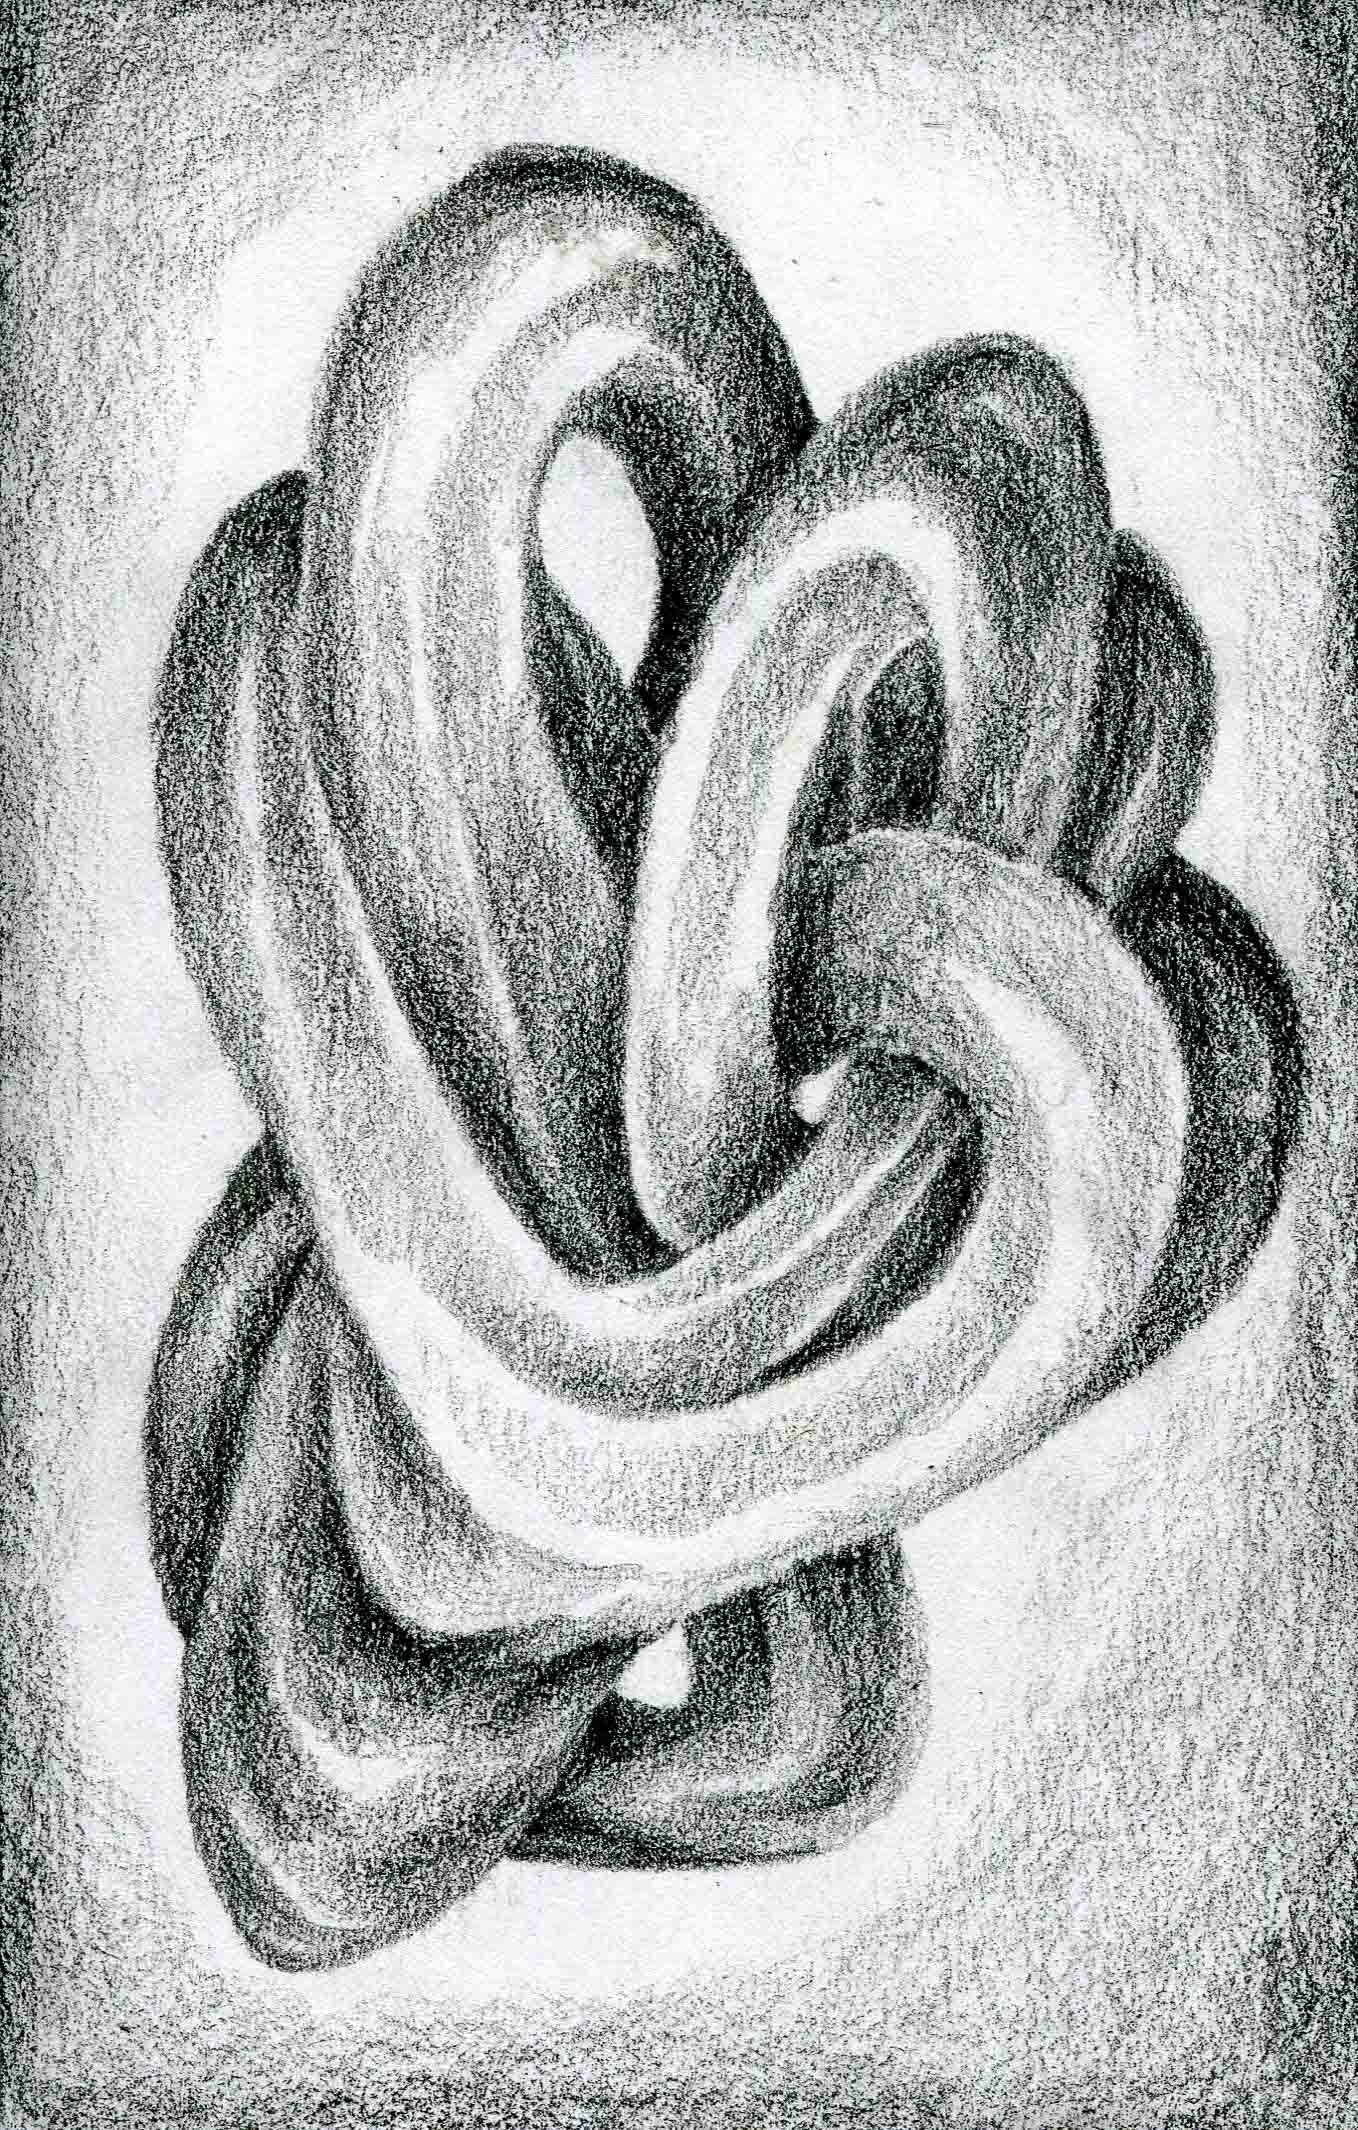 organic form drawings | automatic drawing series by lurm